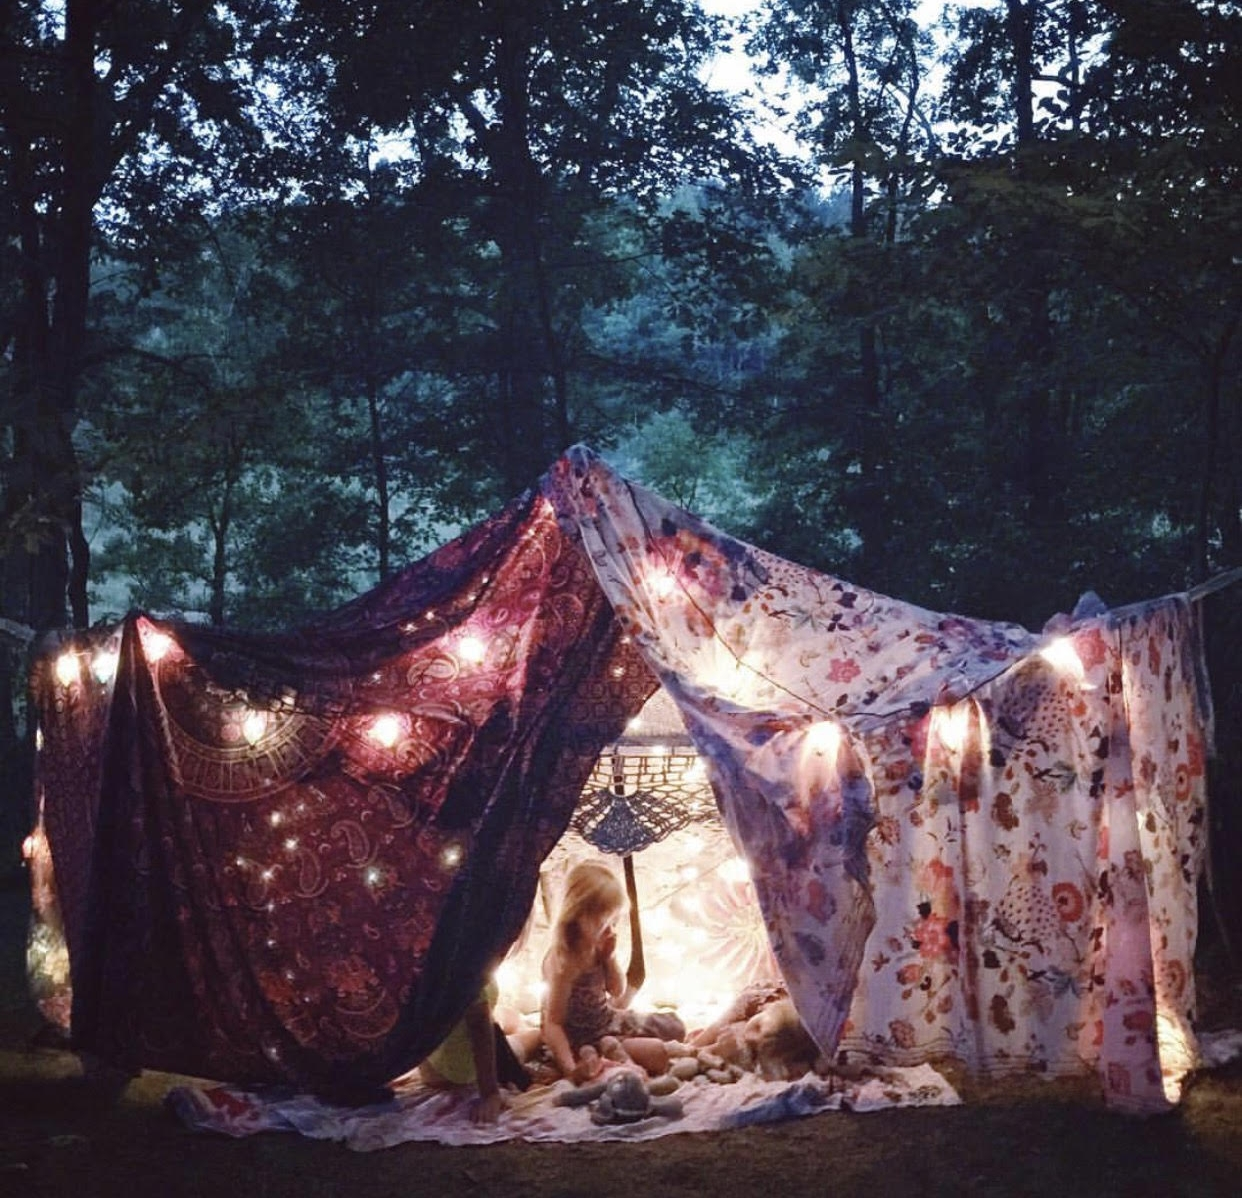 Camping and glamping adventures  via Sarah Schneider